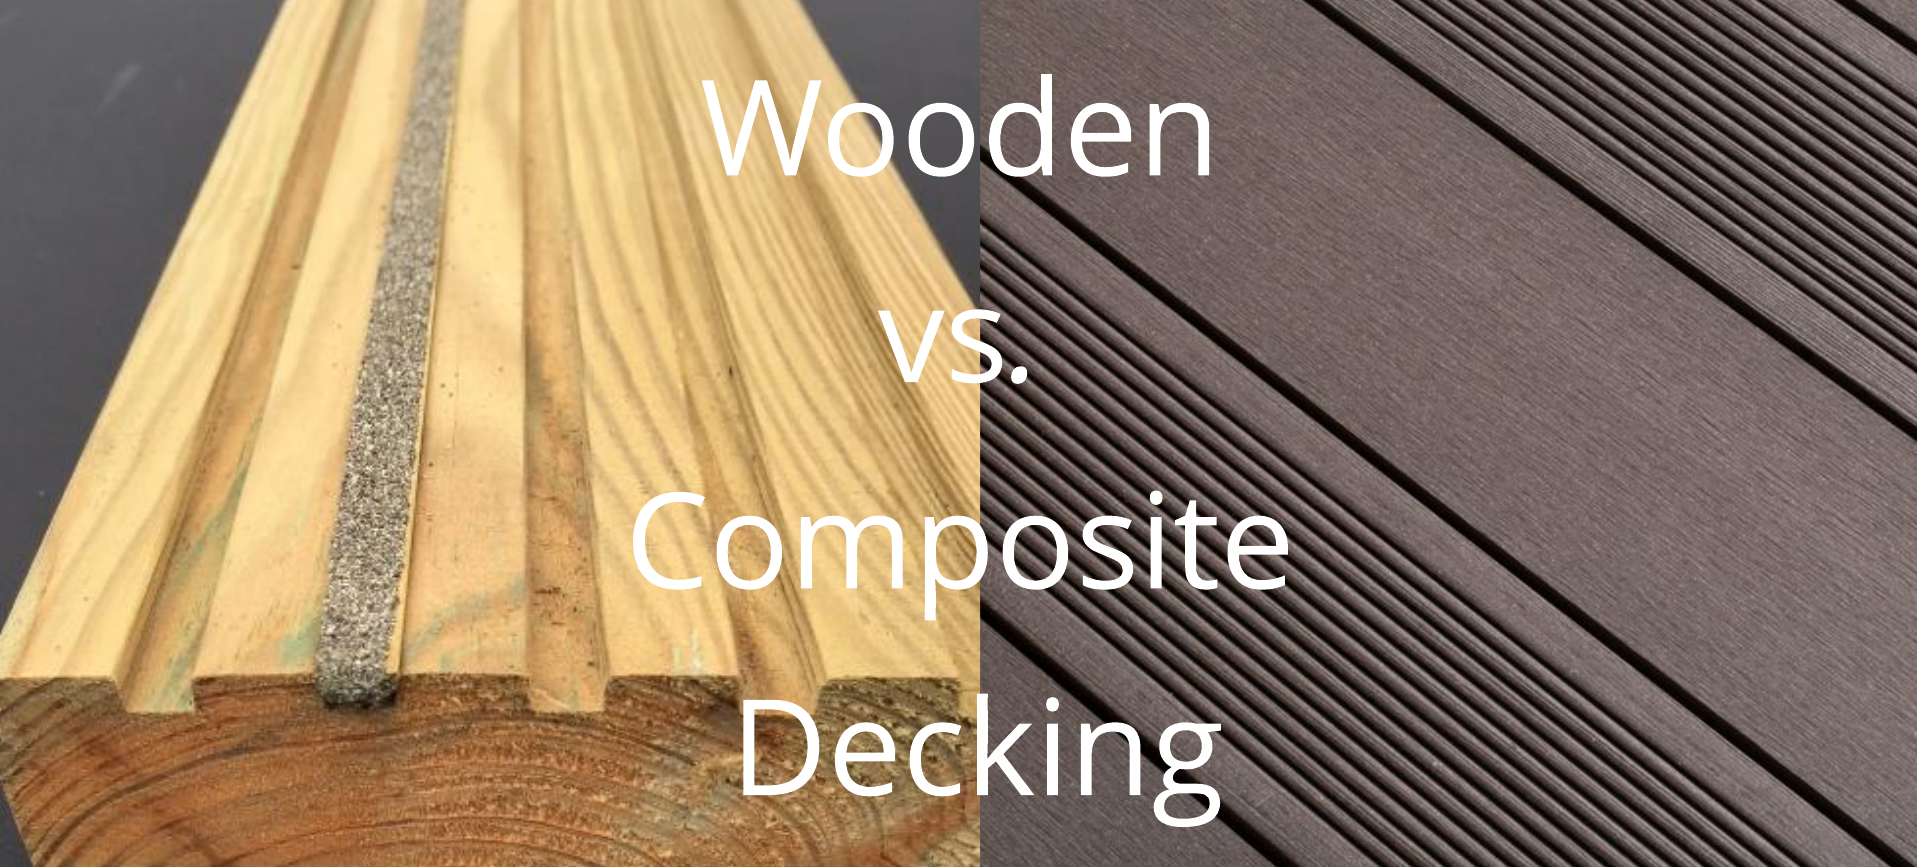 Wooden Vs. Composite Decking